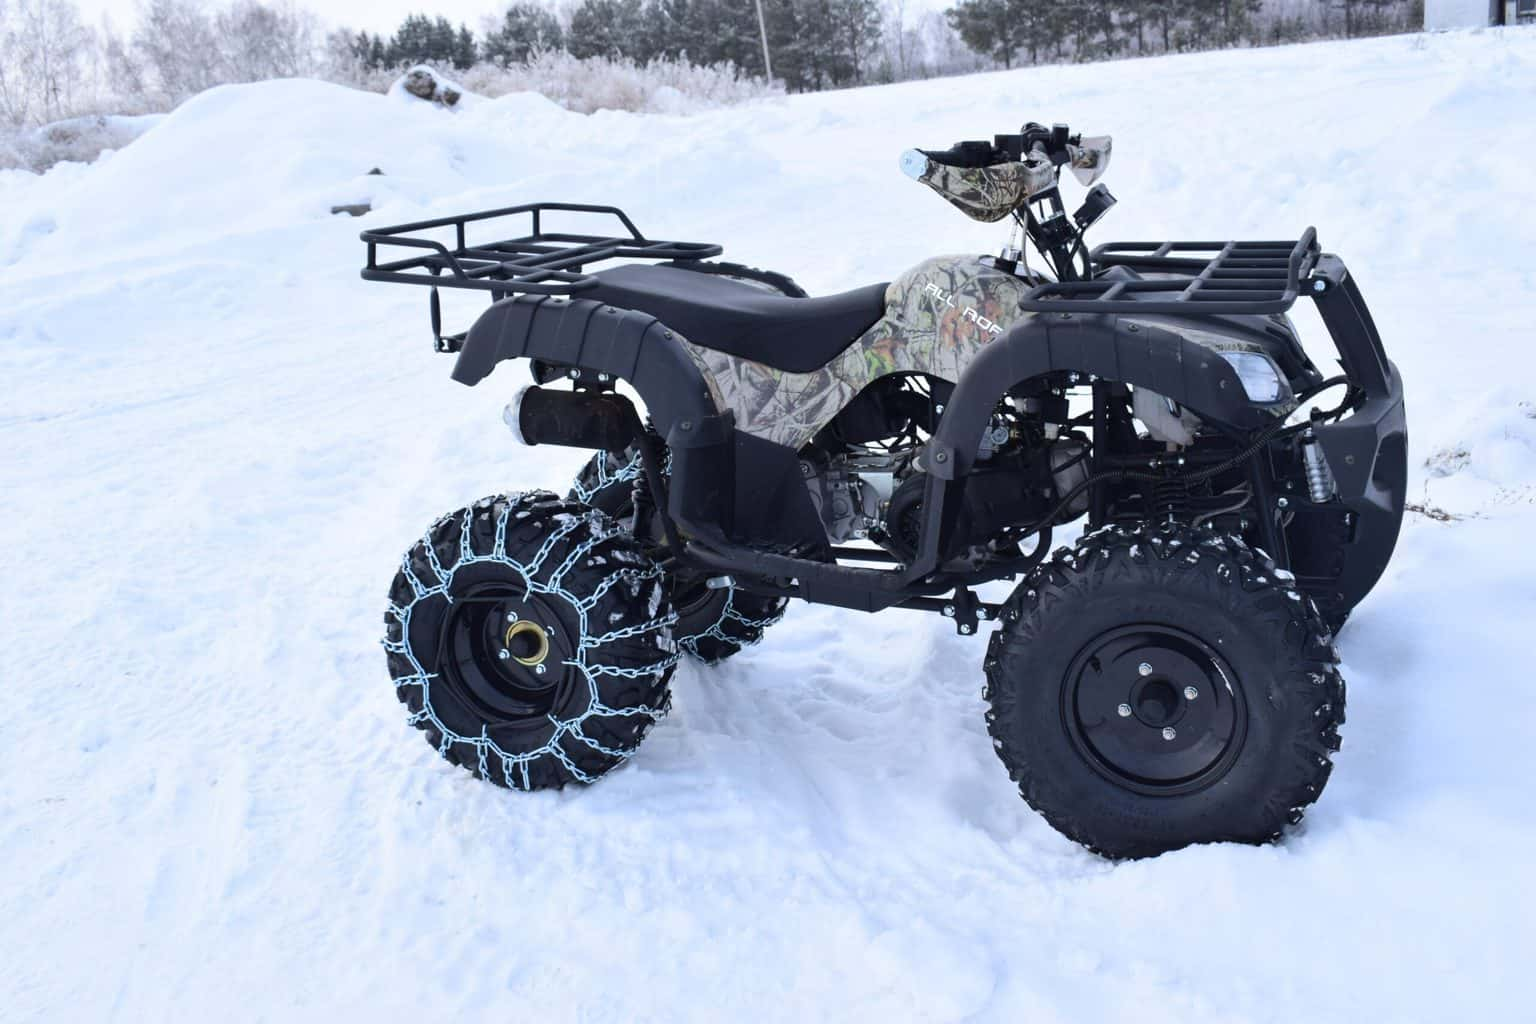 A shot of an ATV in snow